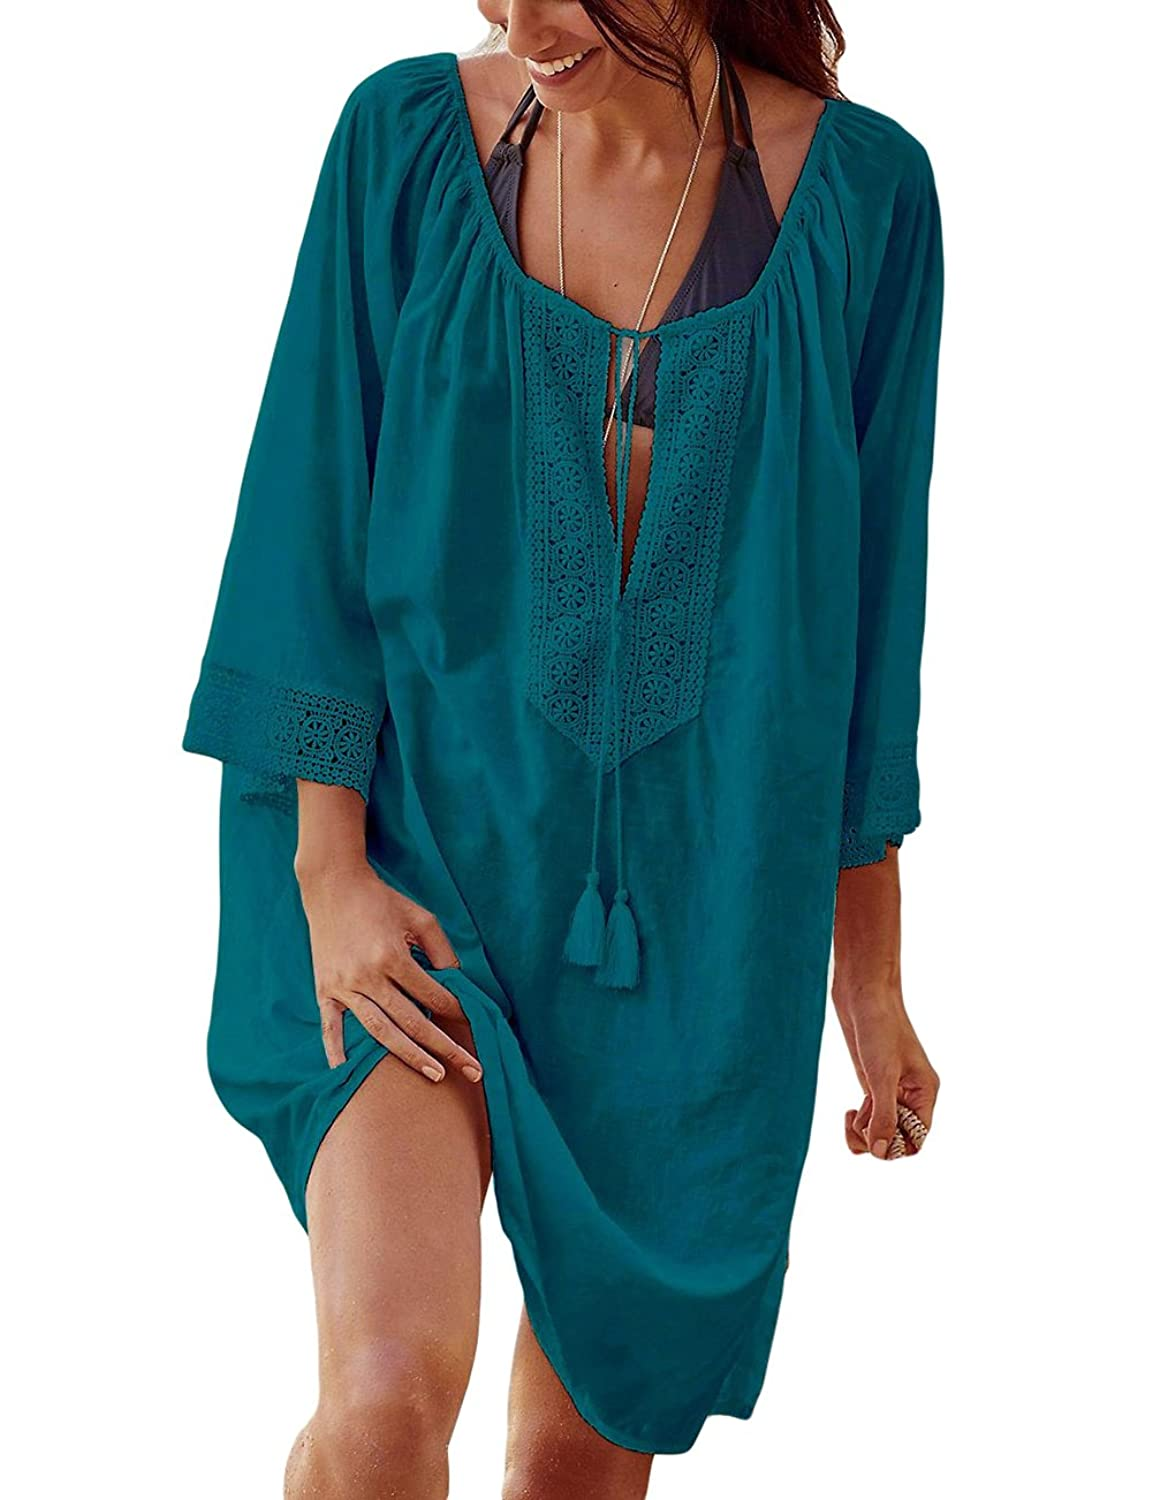 471c0d1eee Sexy 3/4 sleeve beach cover up with string. Made of soft lightsome fabric,  comfortable to wear in hot days. Can be served as a summer top, ...